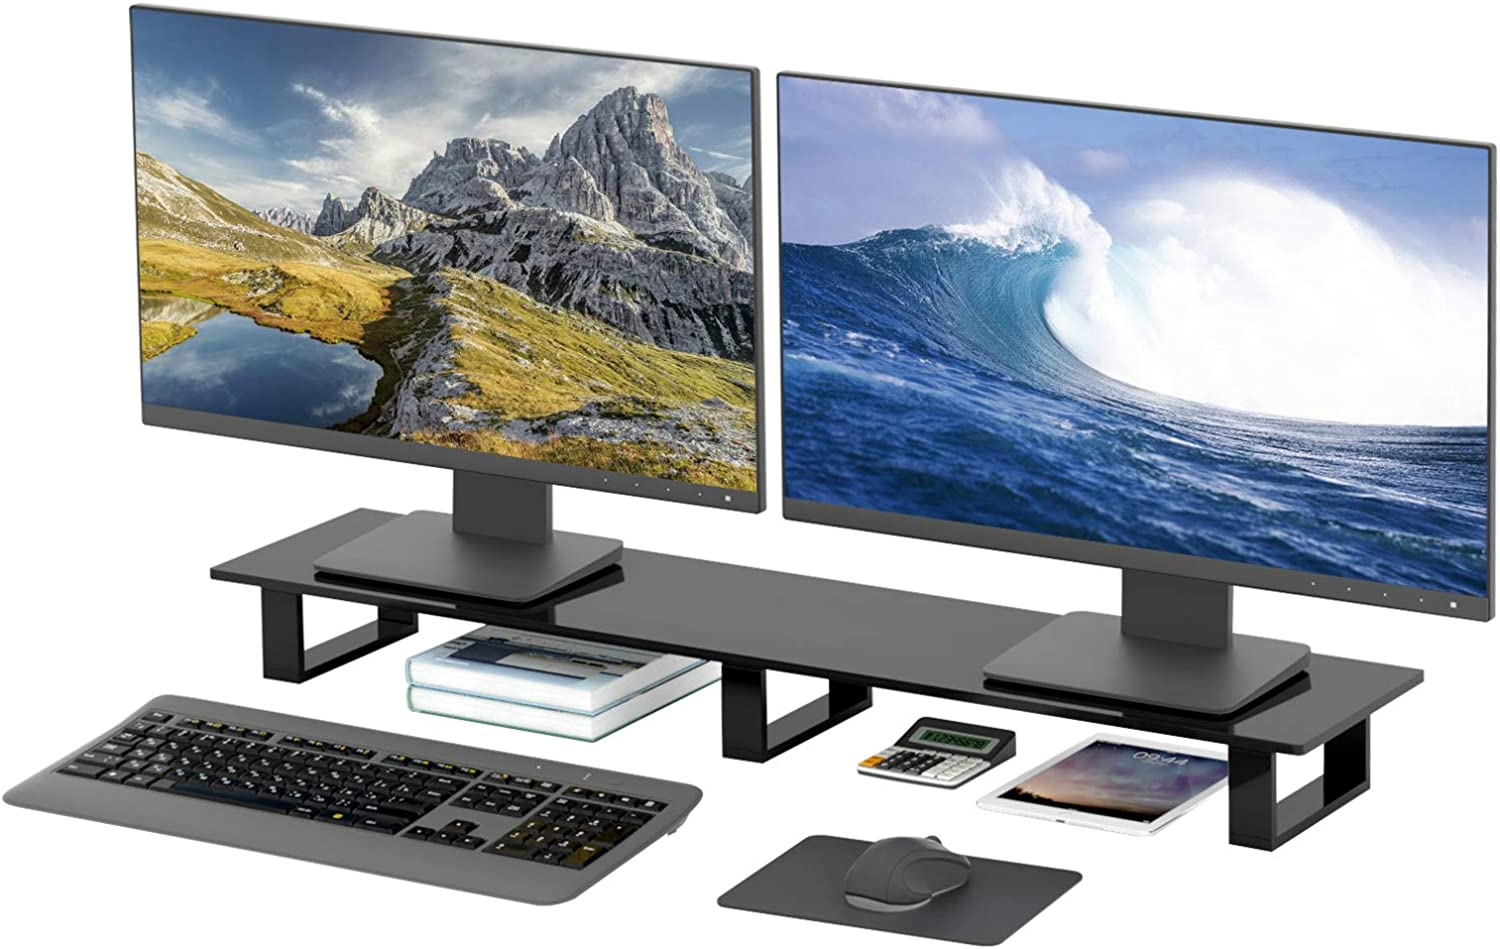 Acrylic Dual Monitor Stand, NIUBEE Extra Large Computer Monitor Stand Riser, Premium Desk Monitor Stand for Laptop/Desktop Computer/Printer TV Screen Office/Home/School.